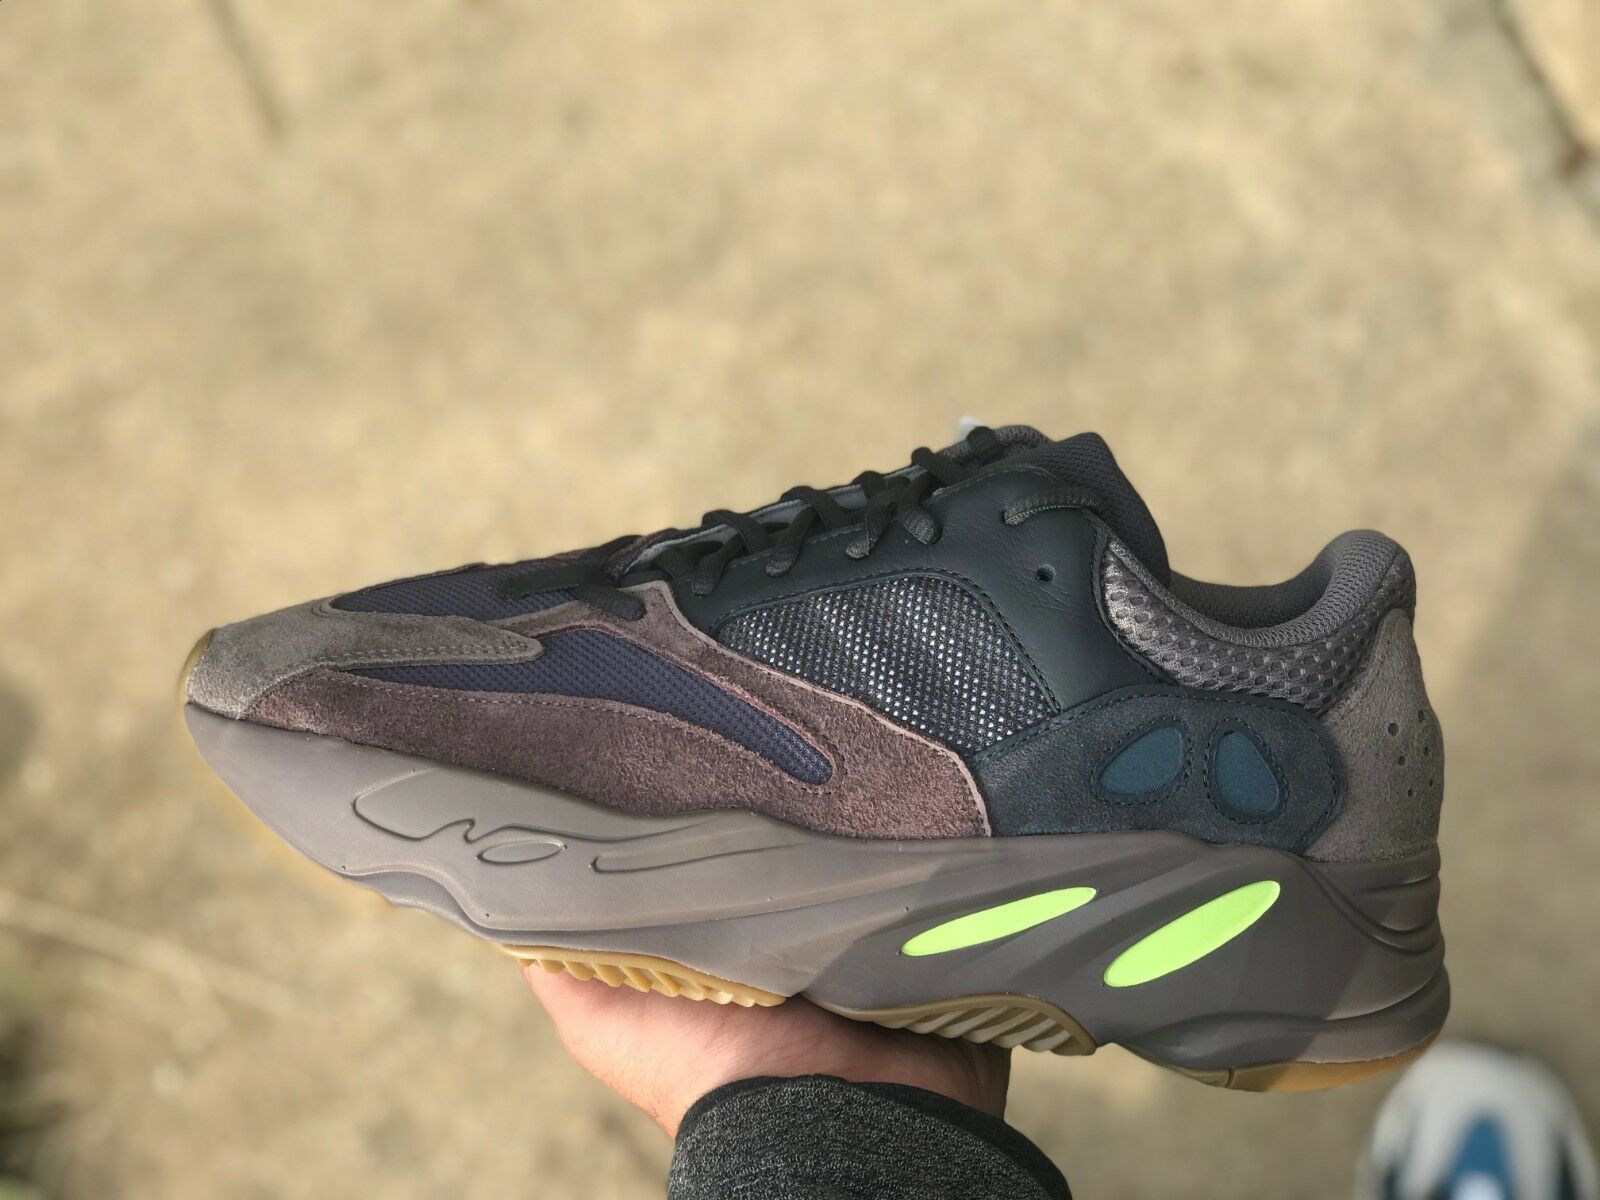 half off e8cf3 e1194 DS New Brand 8.5 US Size 700 Boost Yeezy Confirmed Mauve ...